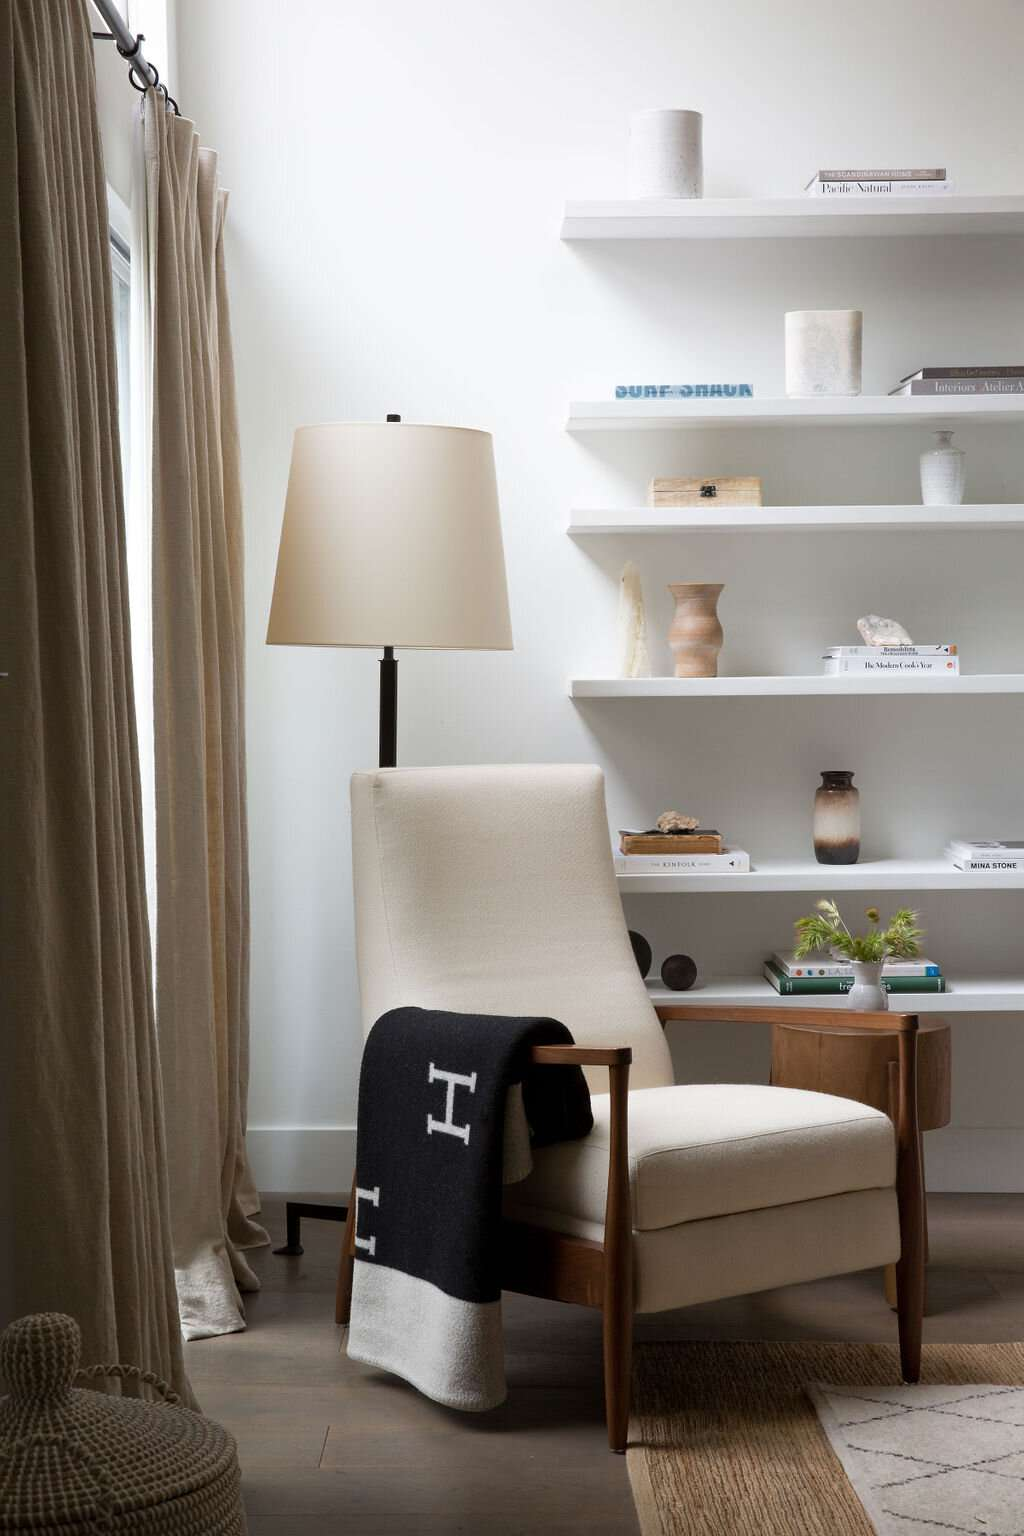 Styled corner with arm chair, open shelves, and initialed blanket